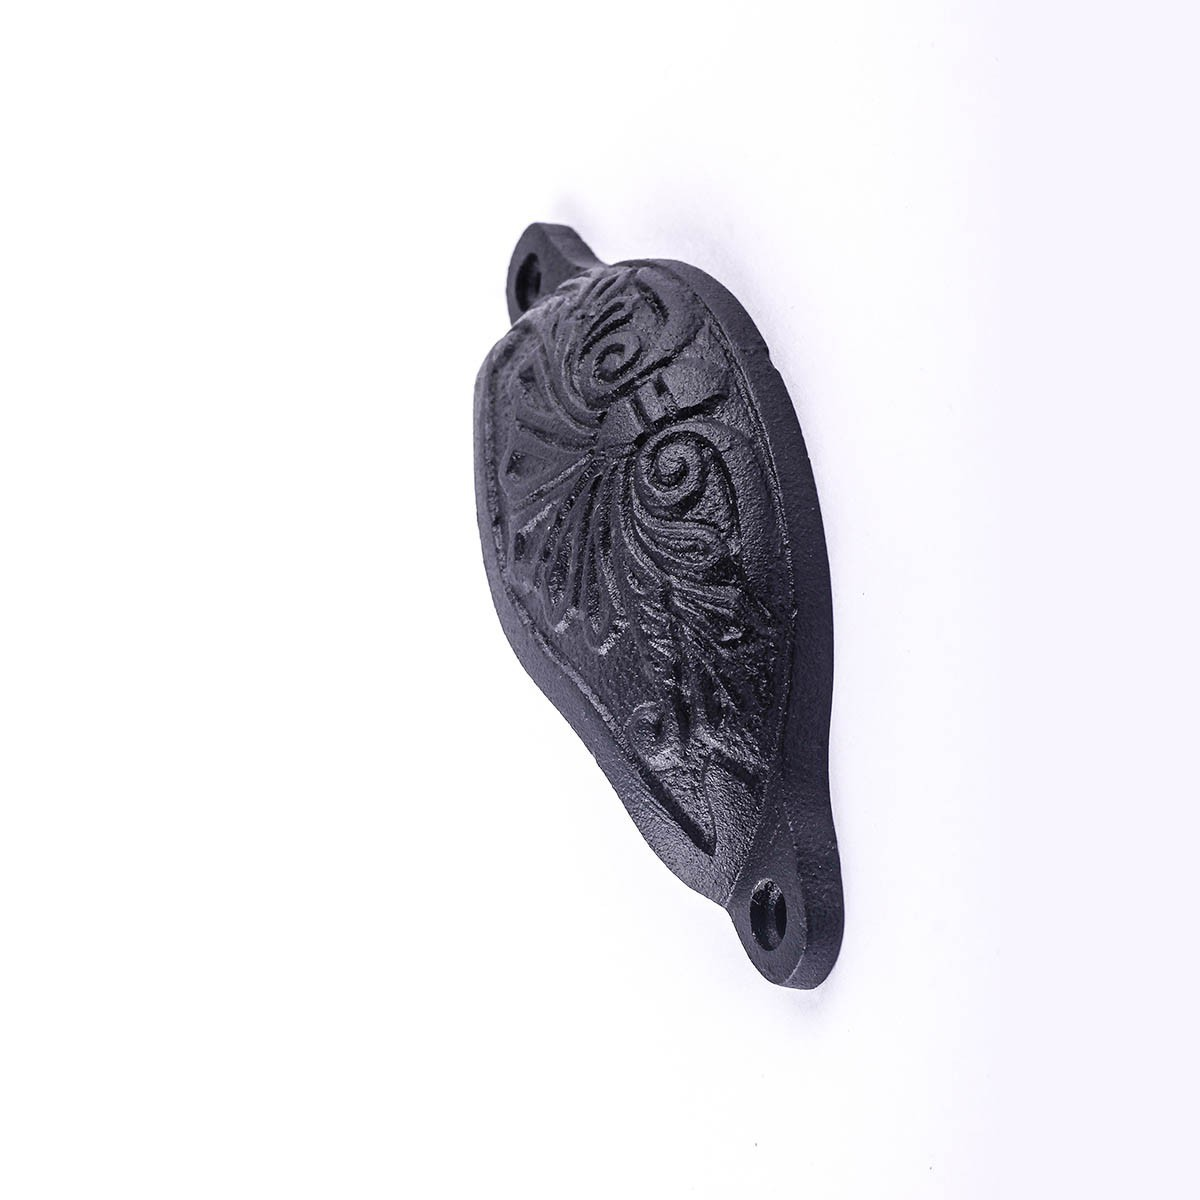 Black Wrought Iron Cup Pull Wrought Iron 4.5 Wide x 1.5 inches High Pack of 6 Cabinet Drawer Pull Unique Ornate Cute Cabinet Pull Black Cabinet Hardware